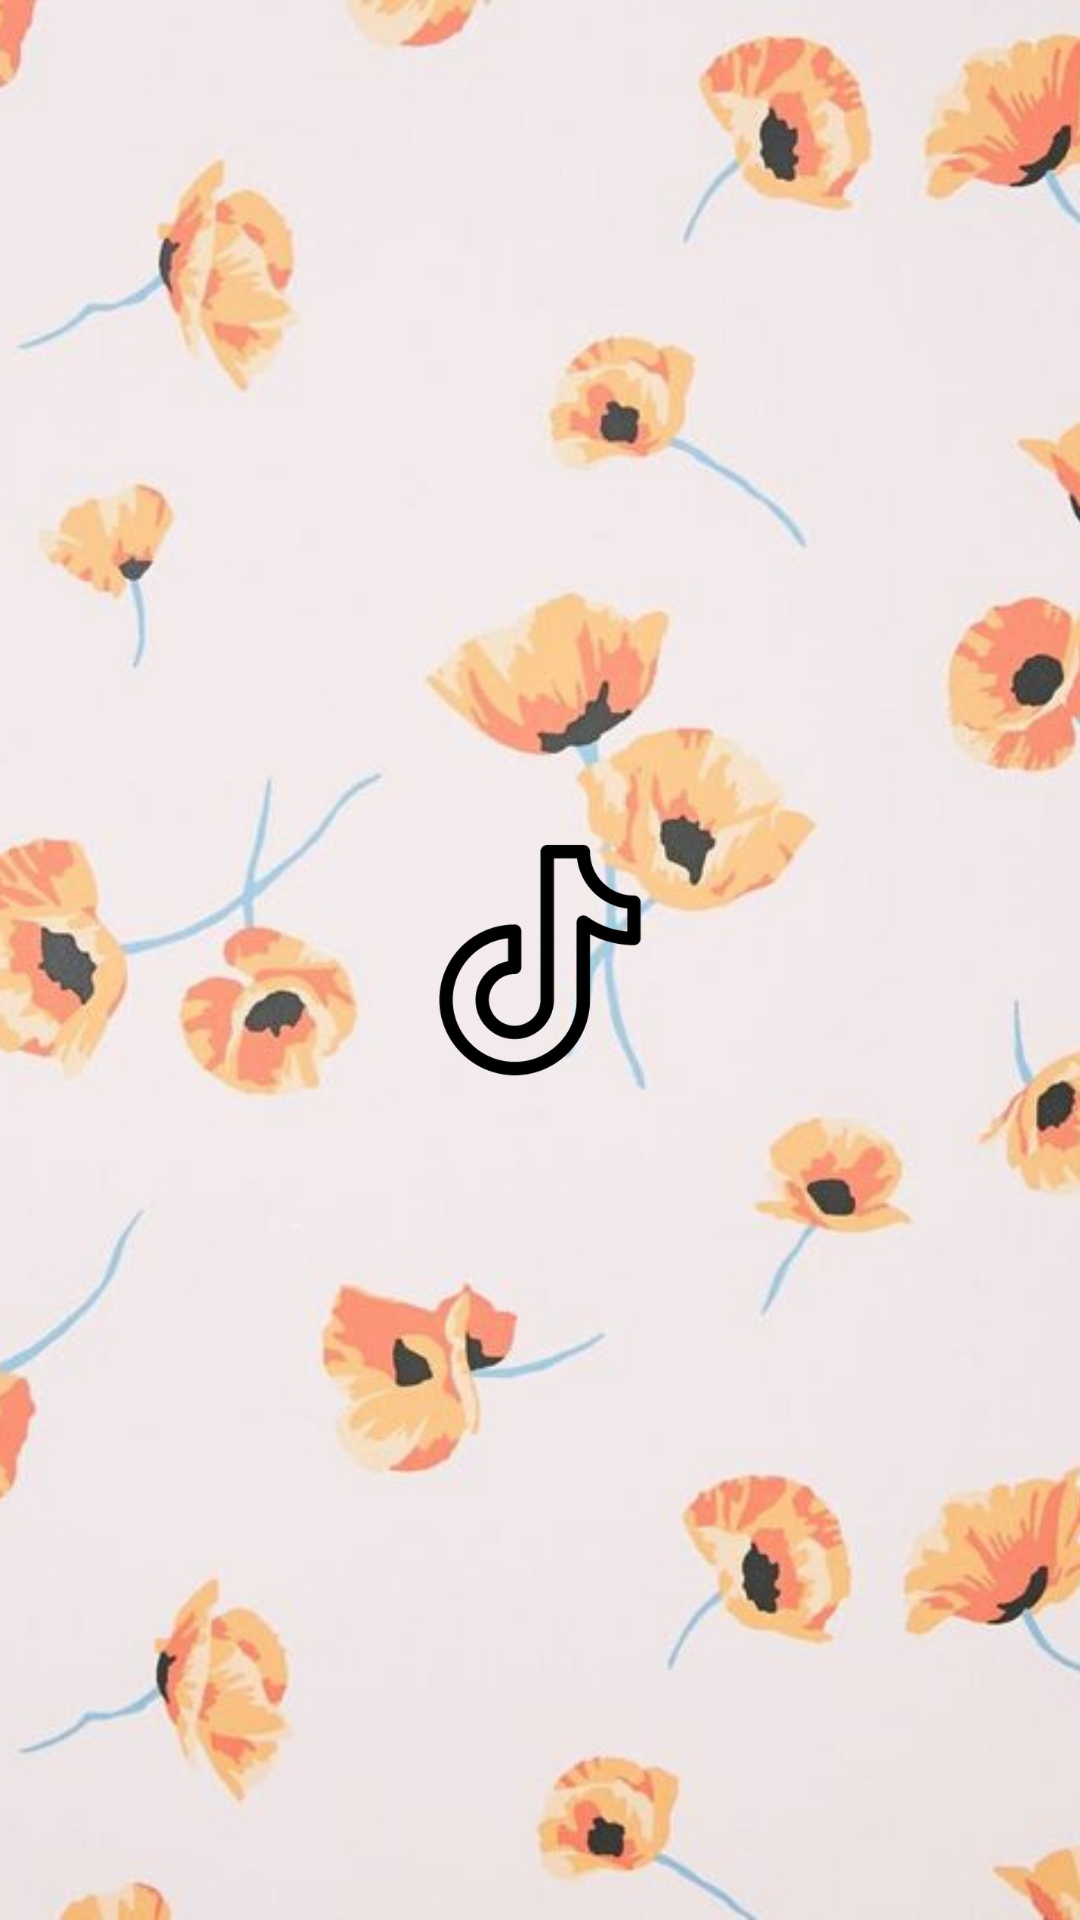 Aesthetics On Tiktok Including Musical Ly Global Video Community Small Pictures Aesthetic Pictures Easy Drawings